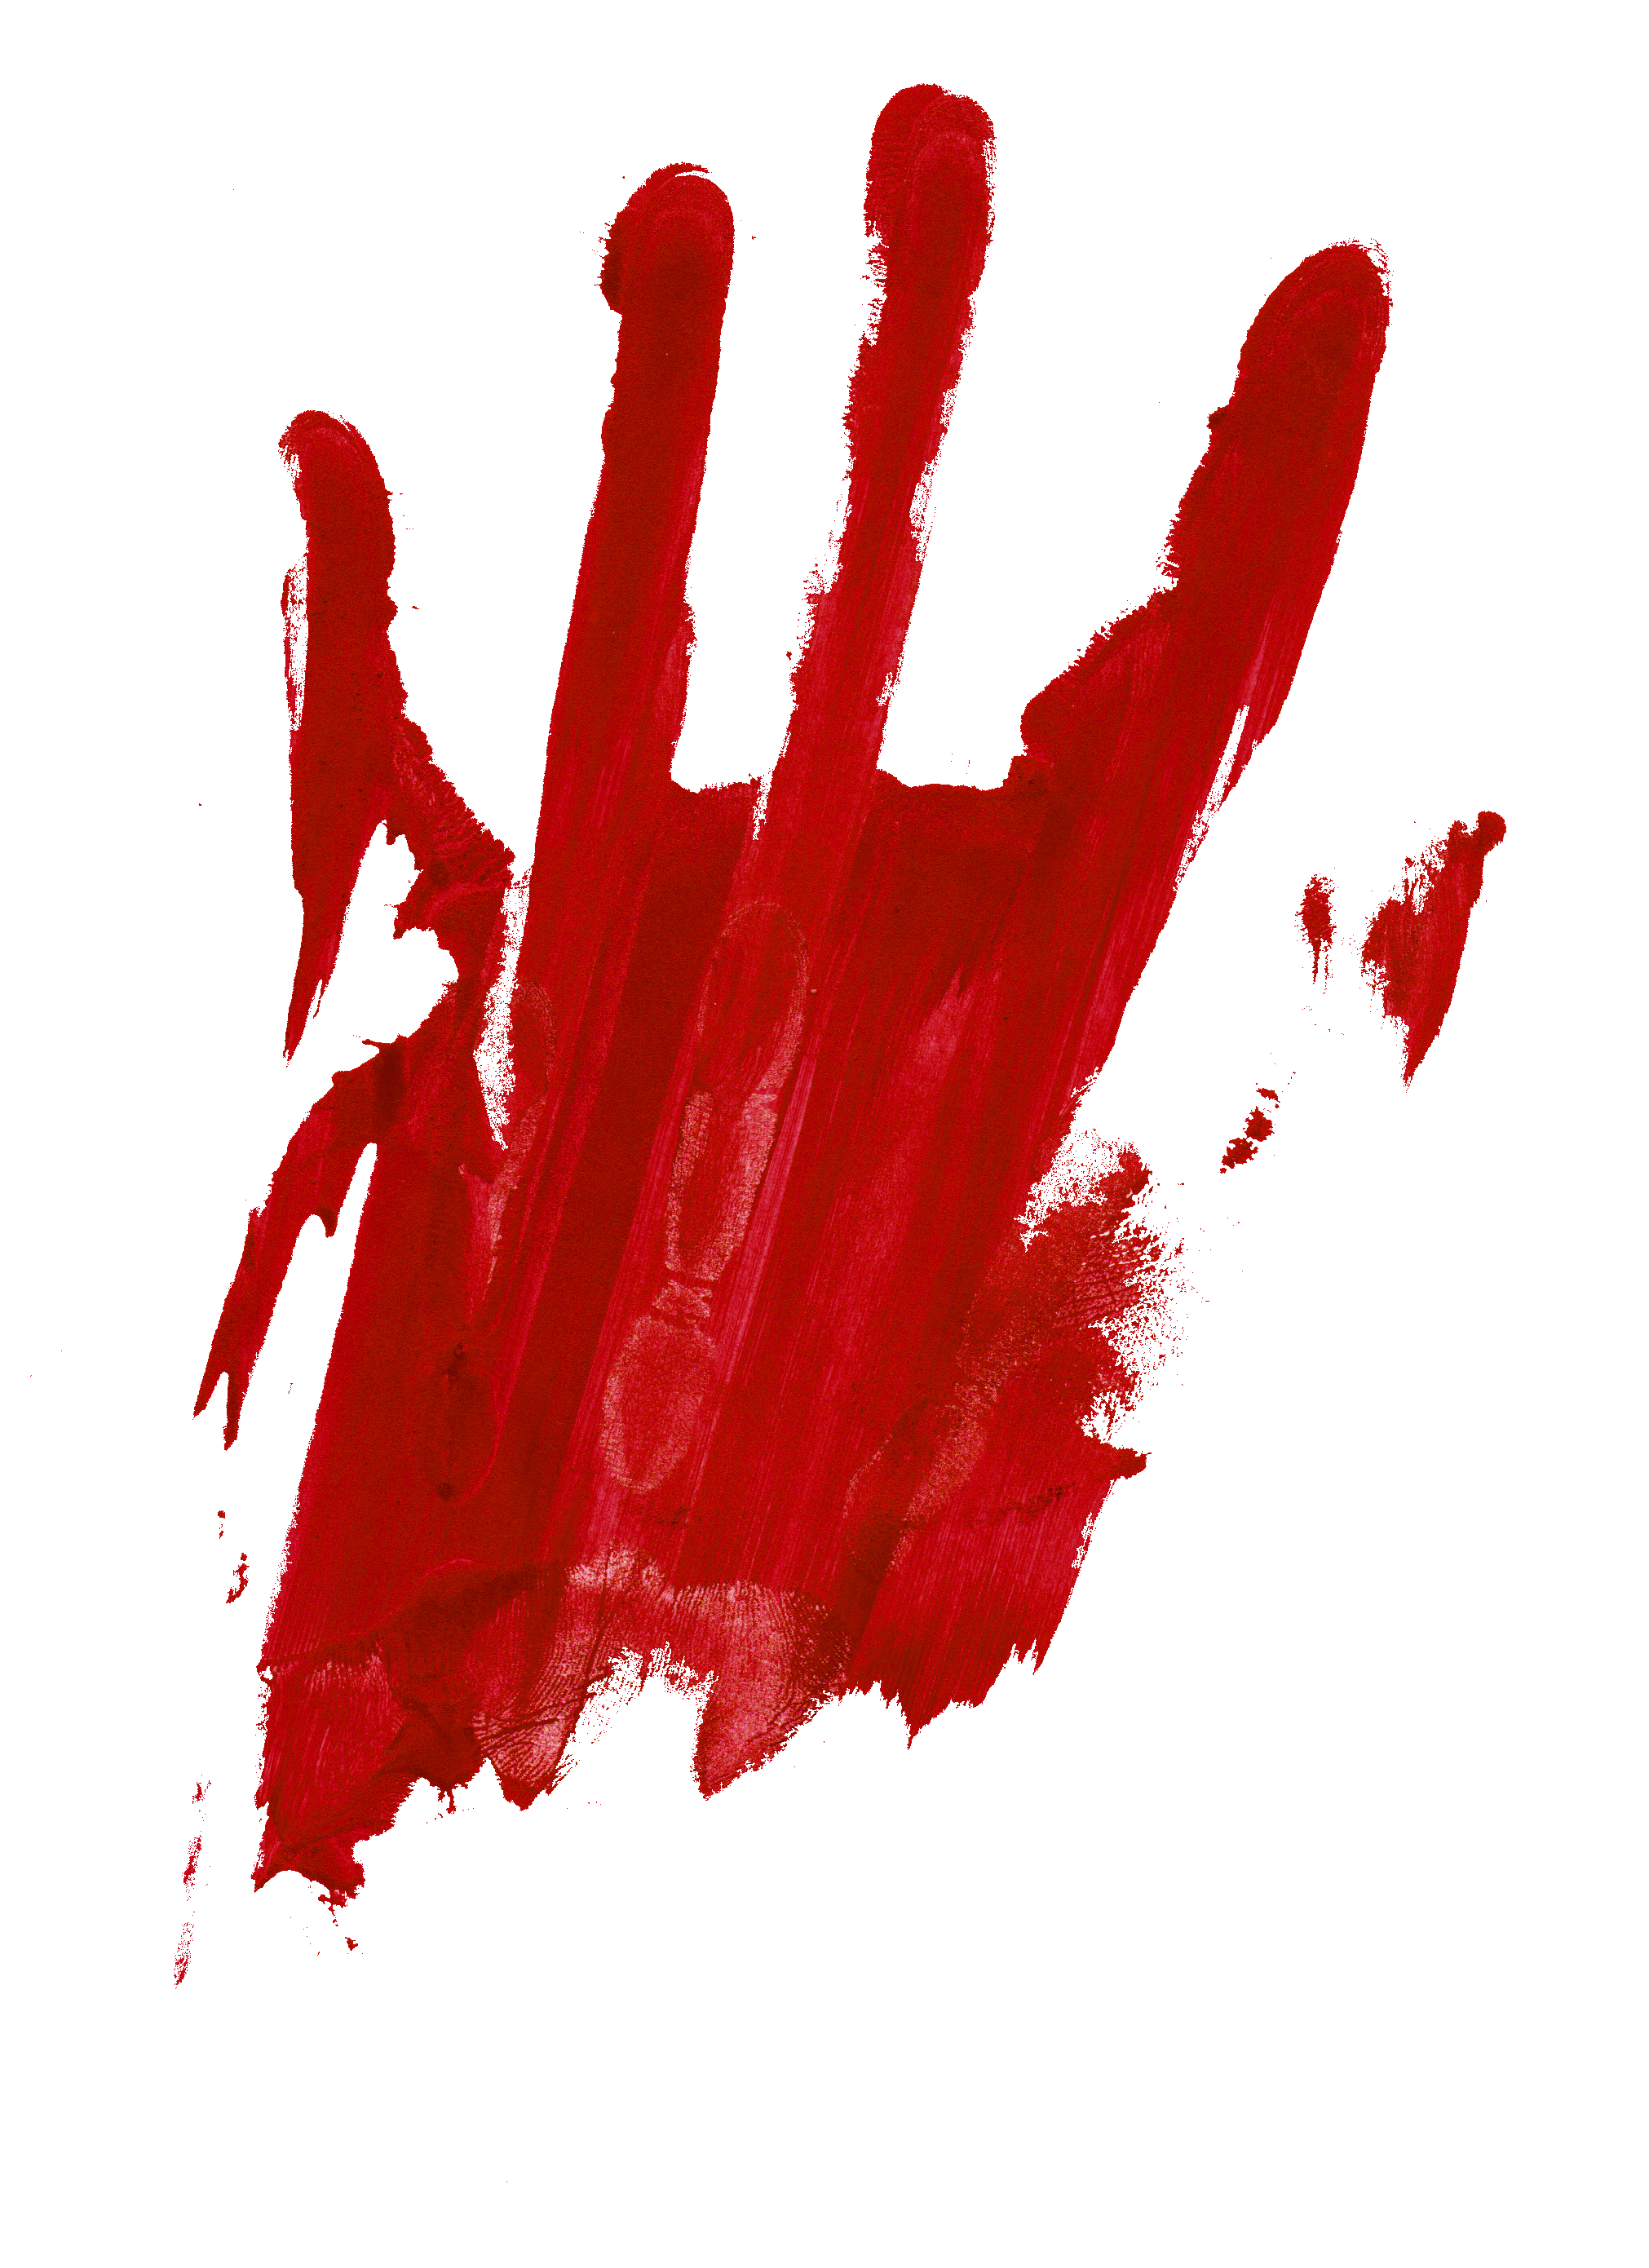 Blood hand png.  hands for free